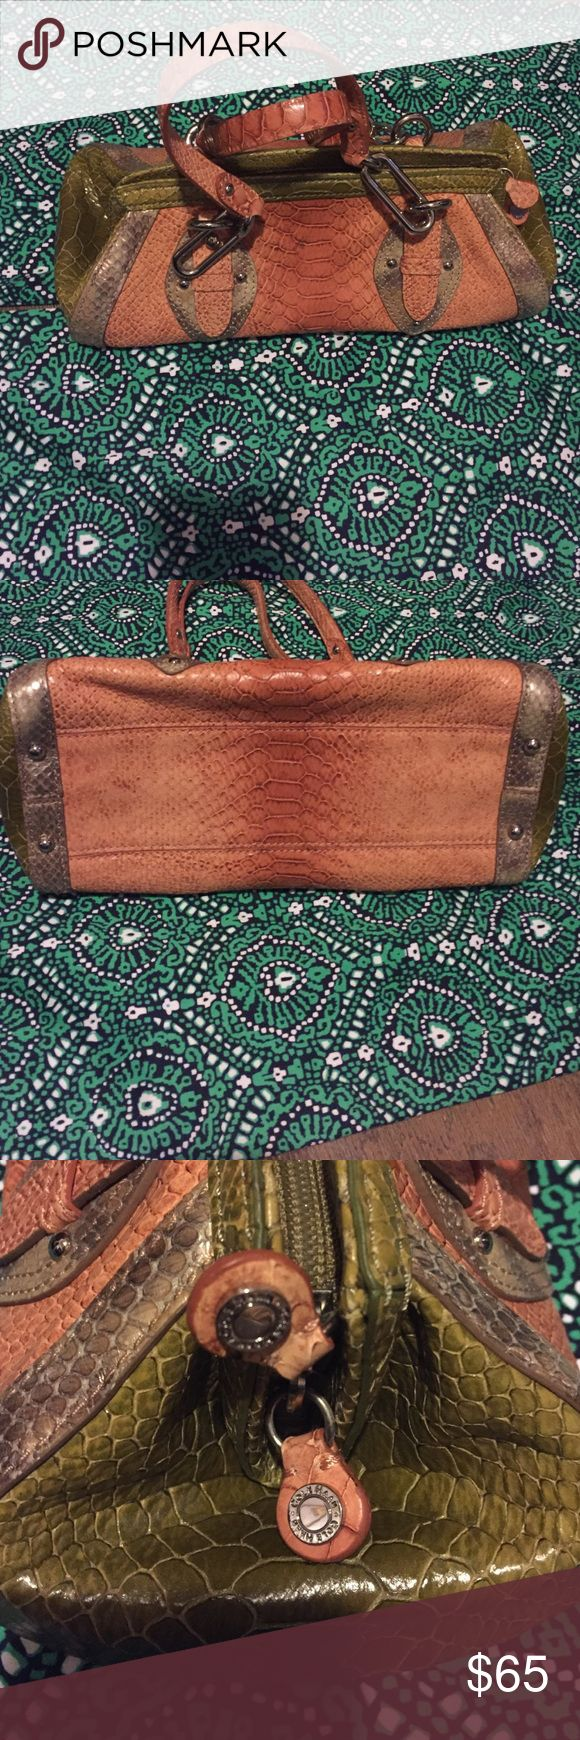 Cole Haan Purse This great little nurse style purse is in great condition never used with snake emobosses print Cole Haan Bags Shoulder Bags